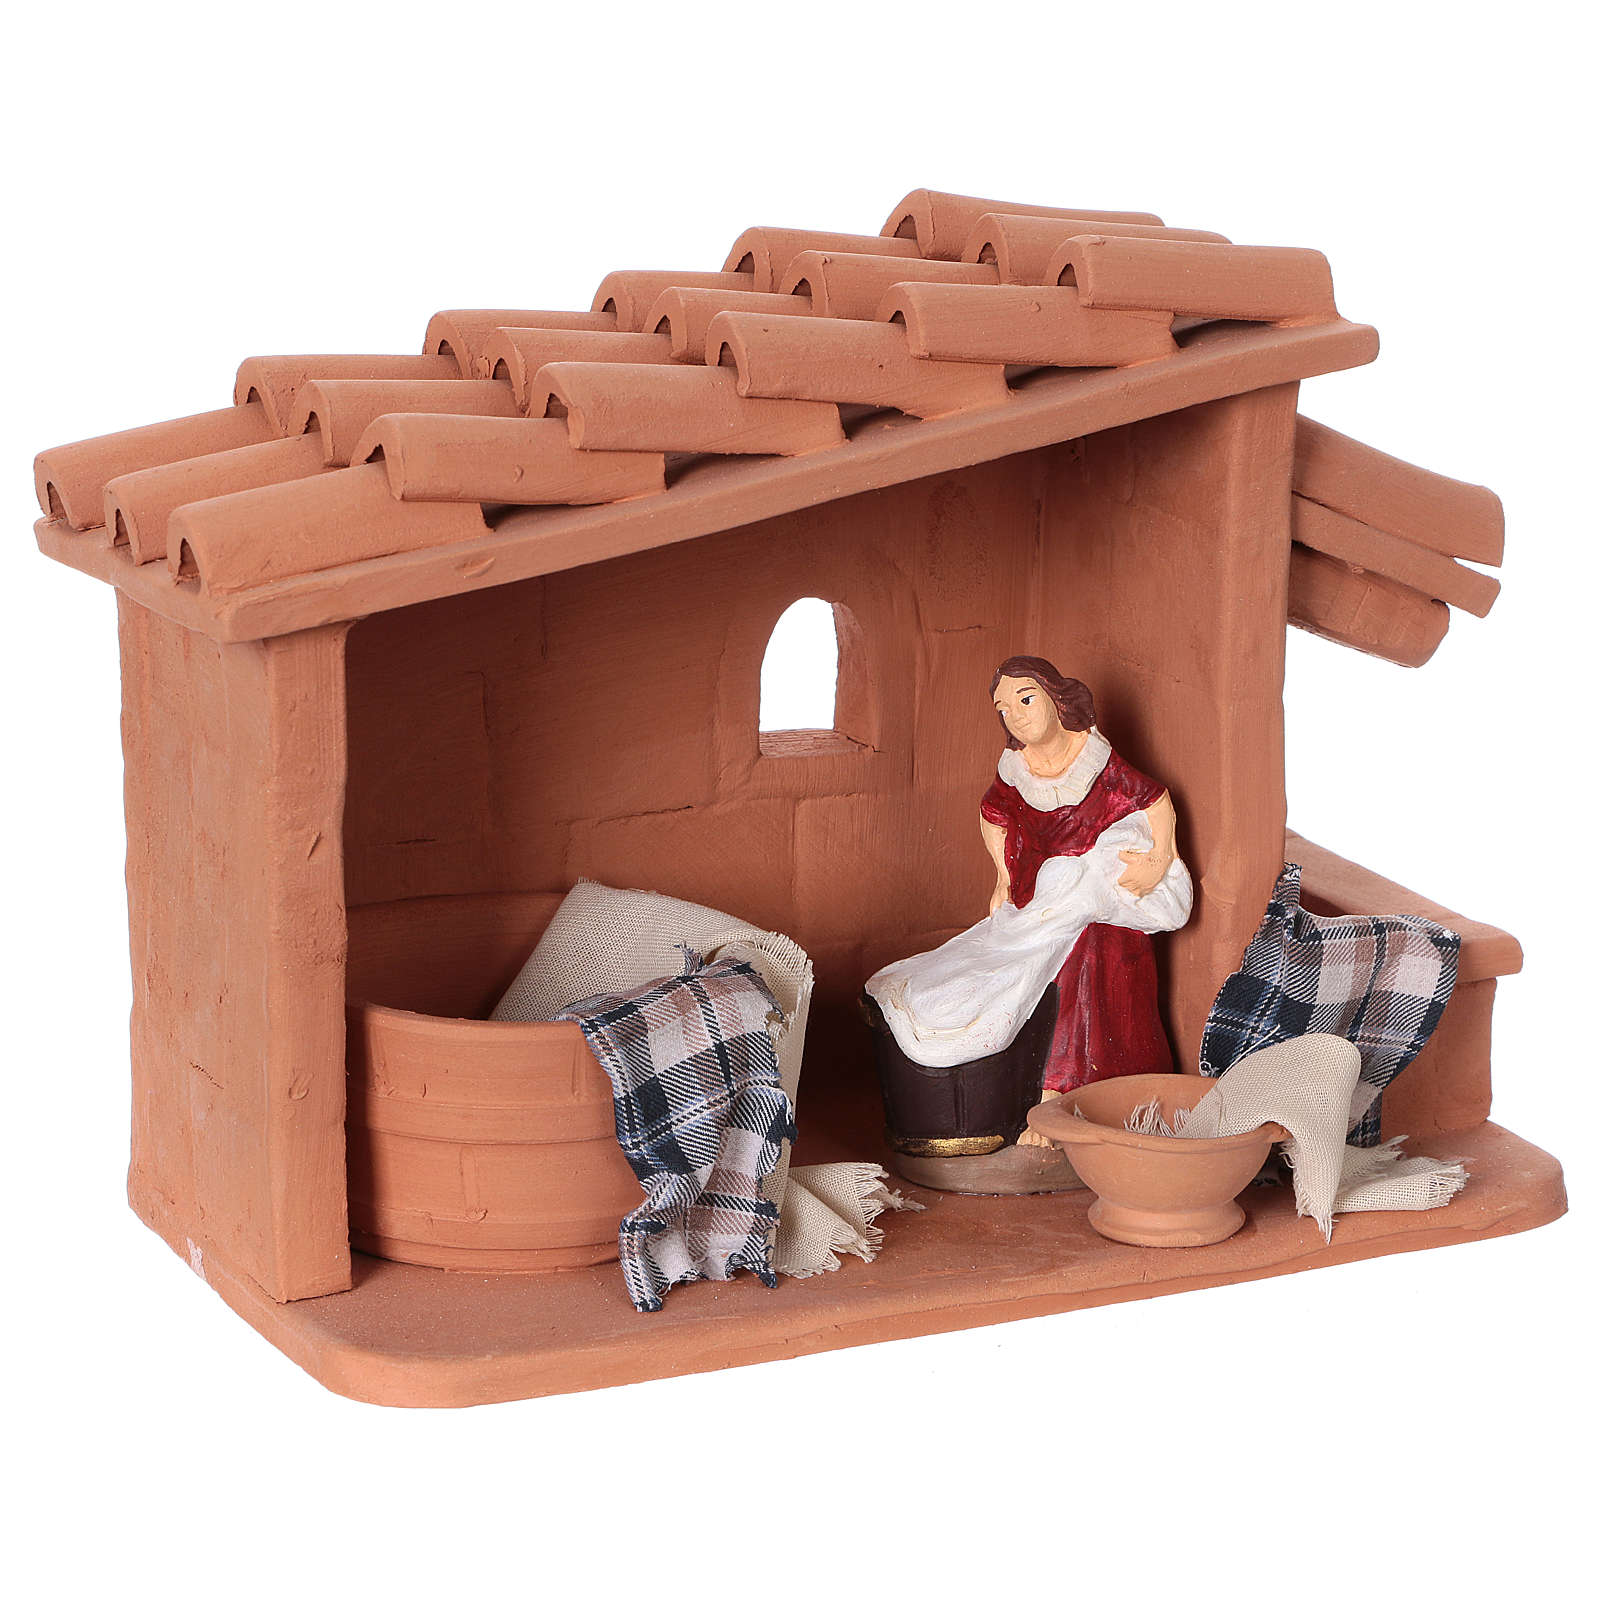 Laundress in terracotta for Nativity scene 10 cm made in Deruta 4